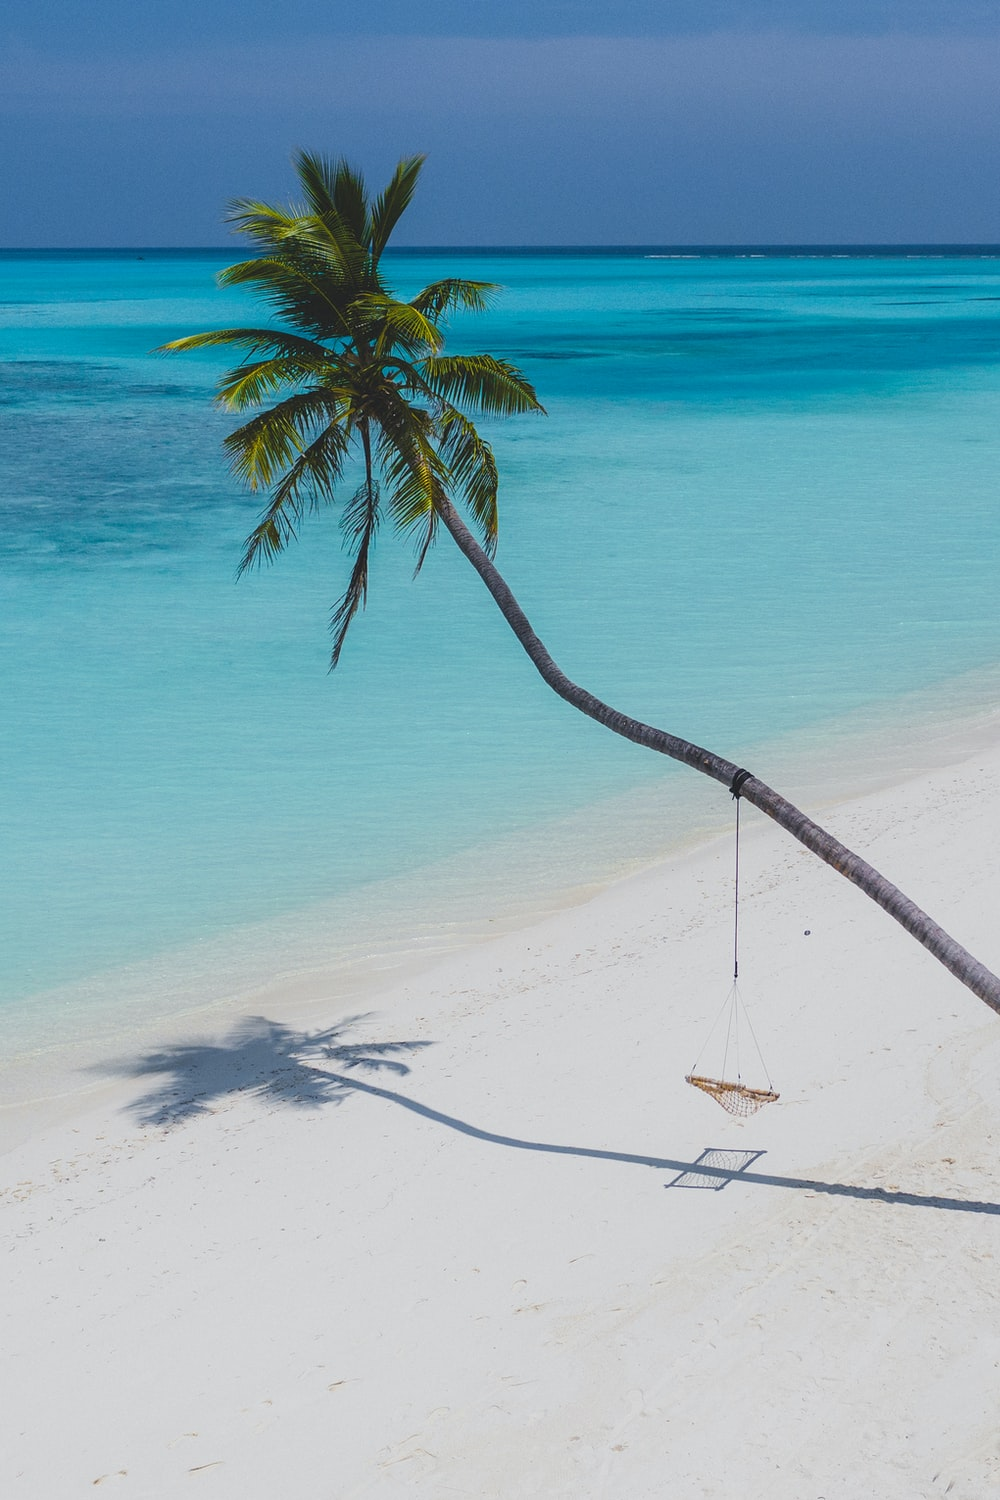 coconut tree on white sand beach during daytime